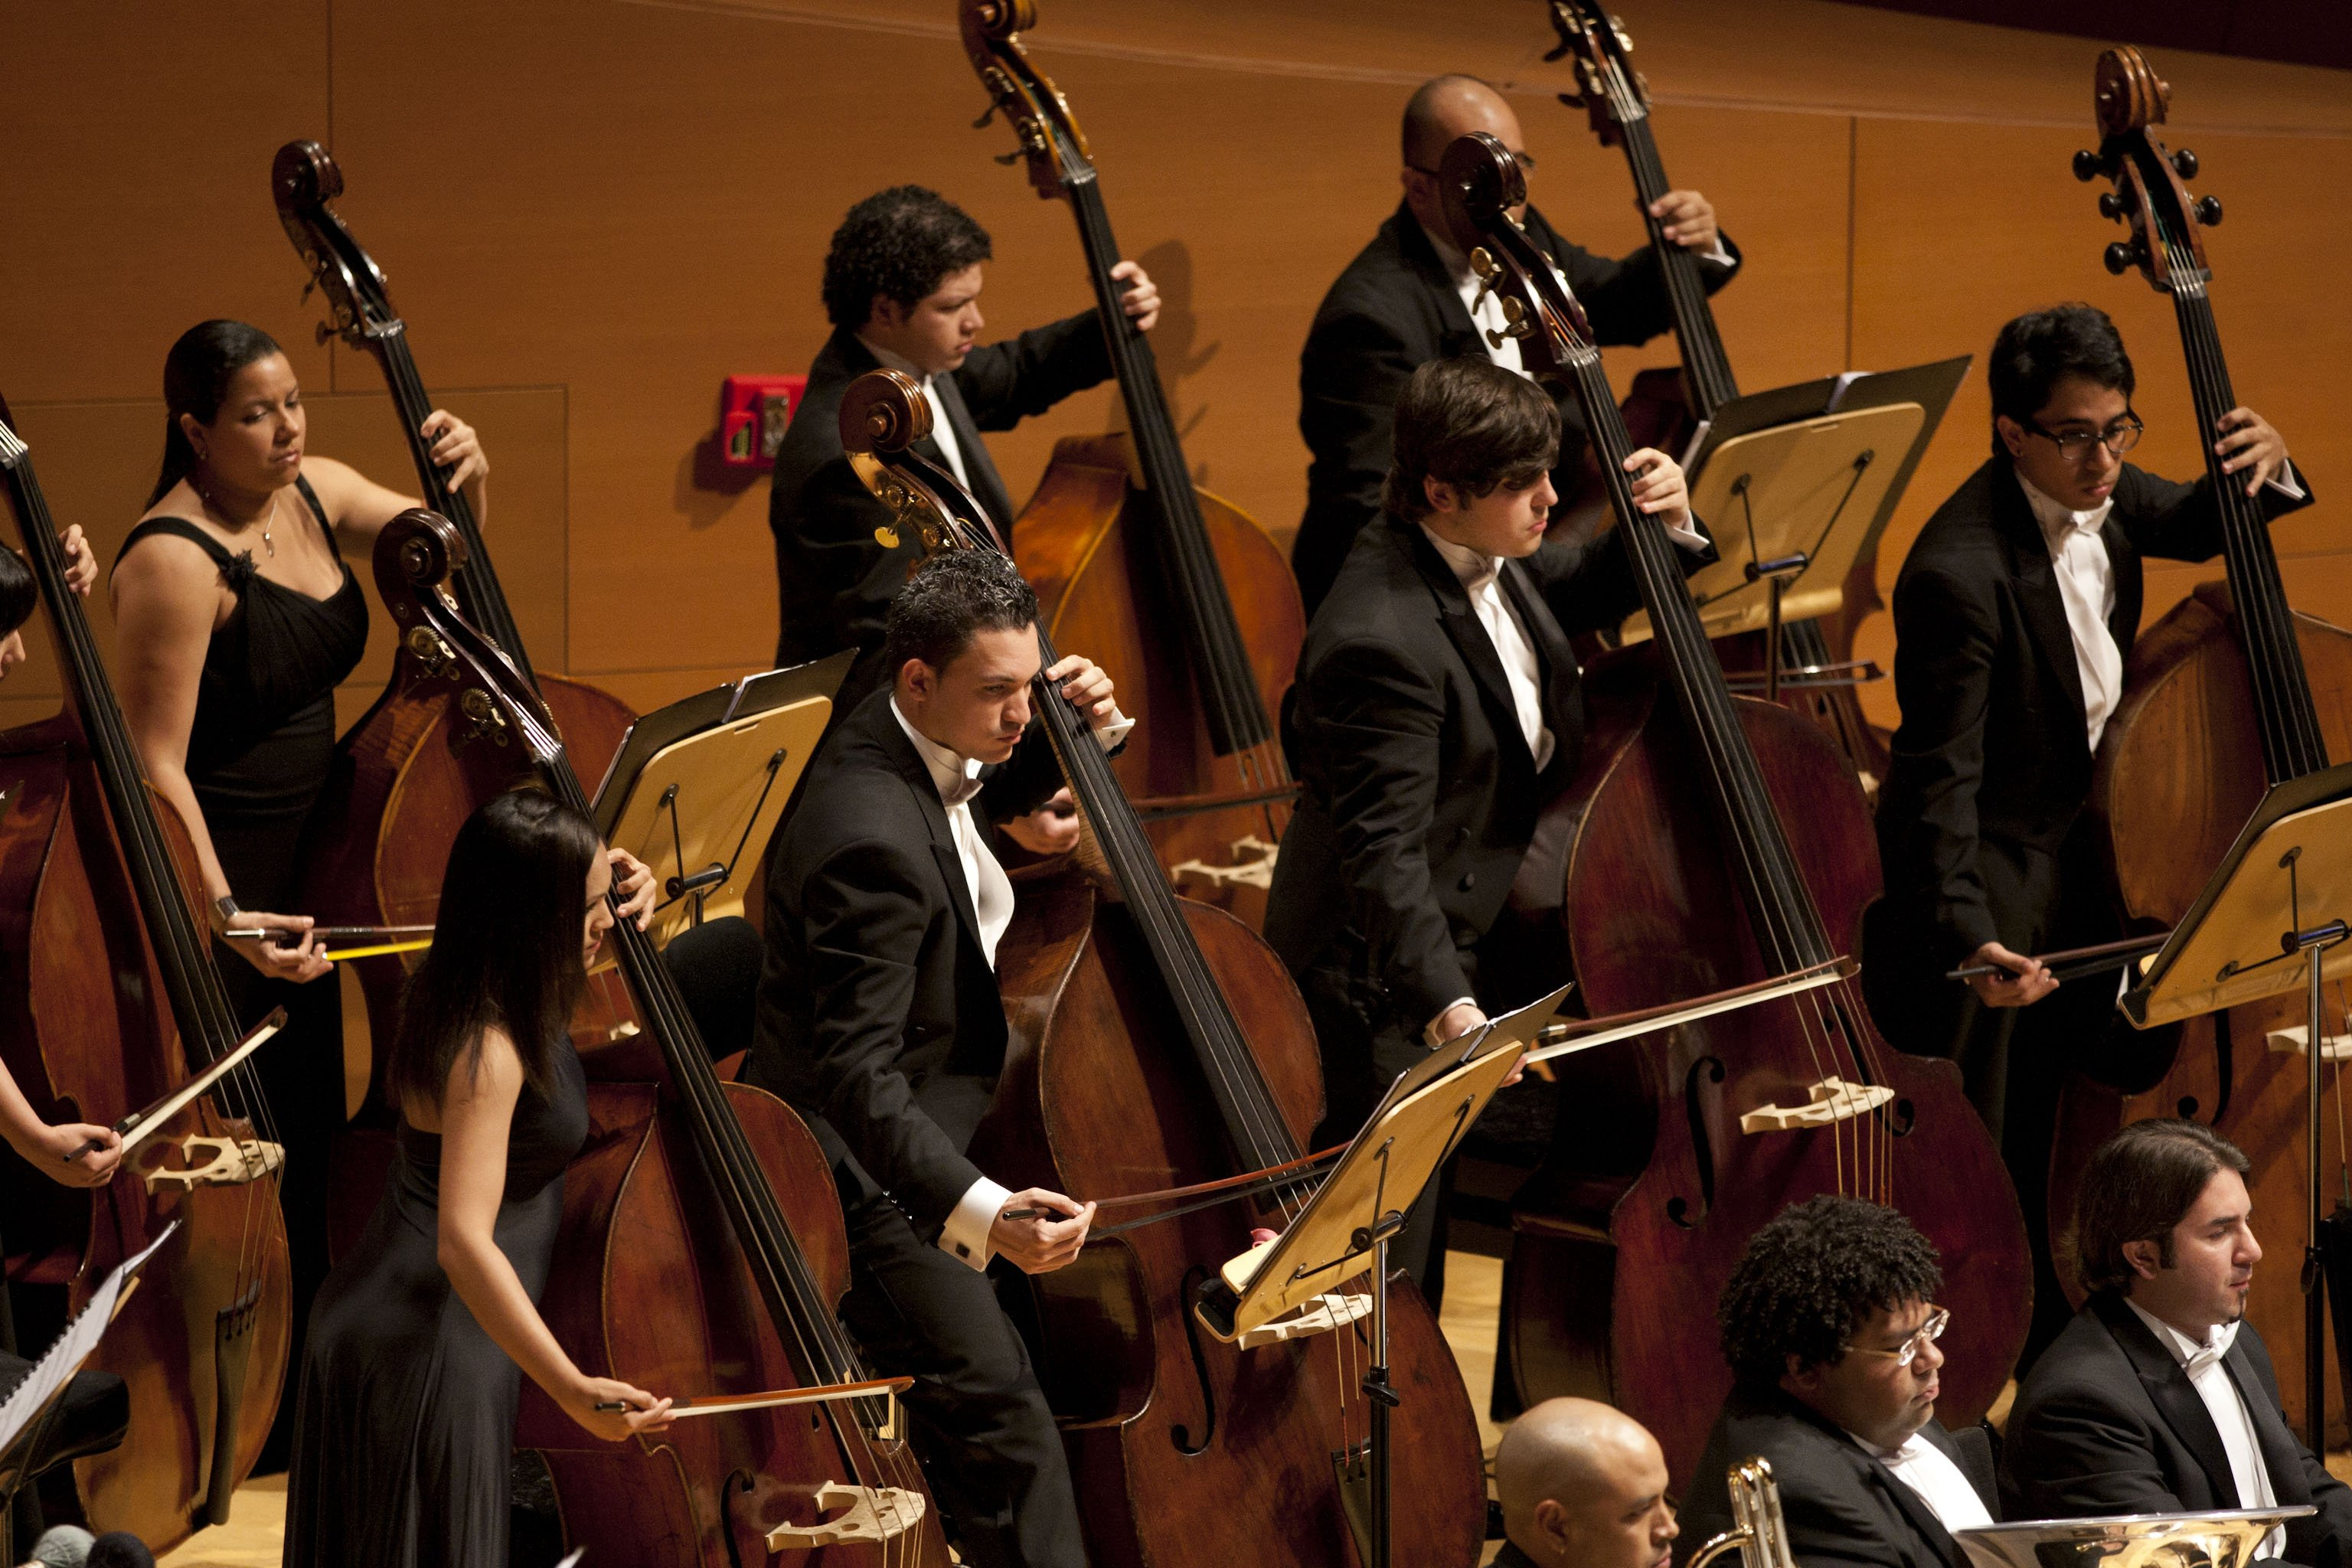 an overview of the history of the peoria symphonic orchestra from illinois